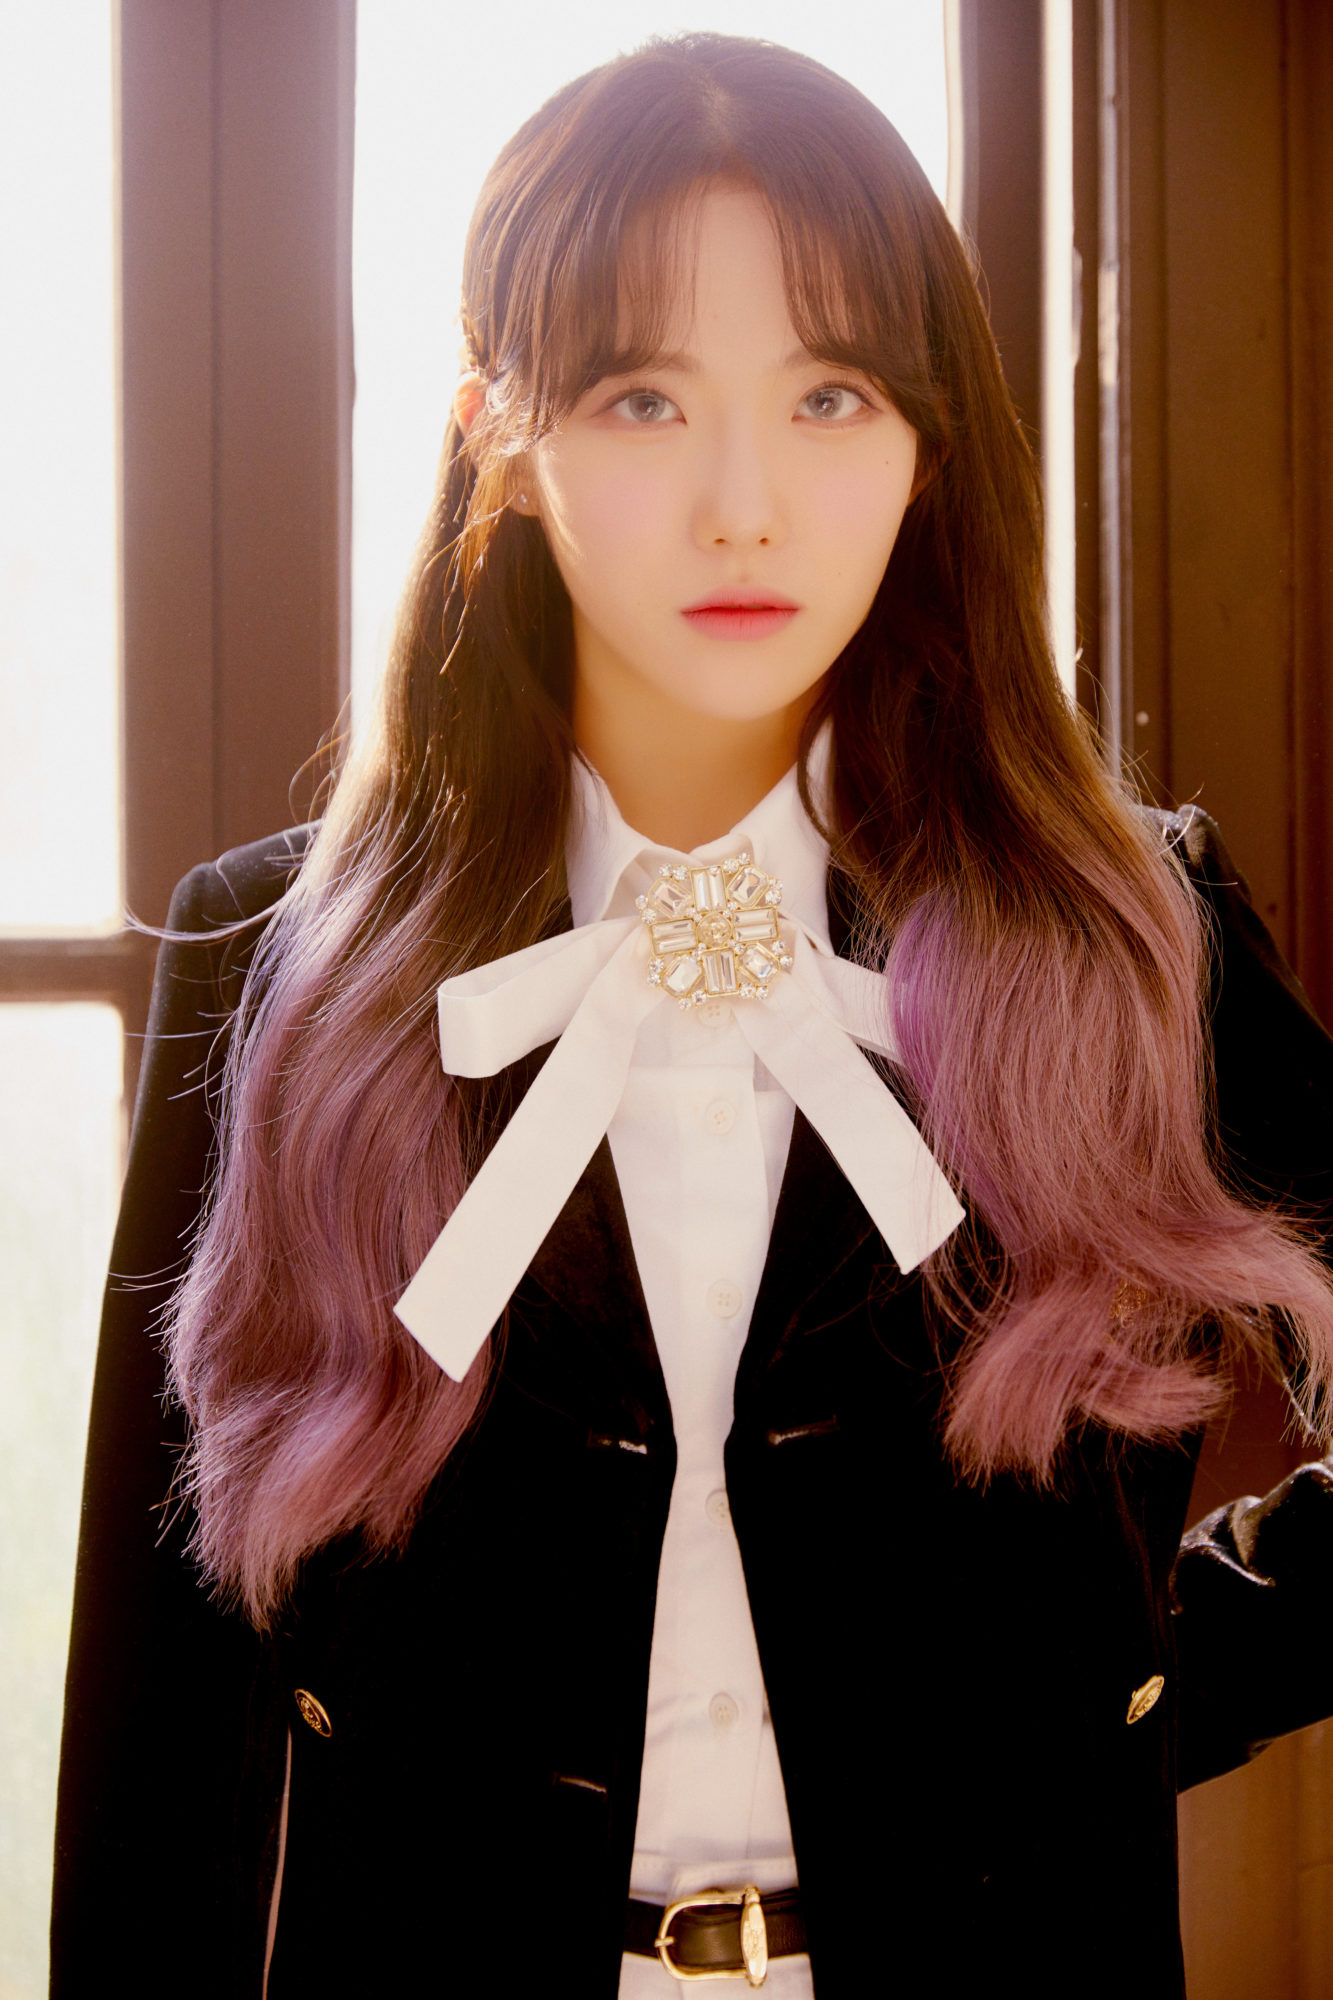 WJSN Luda As You Wish Concept